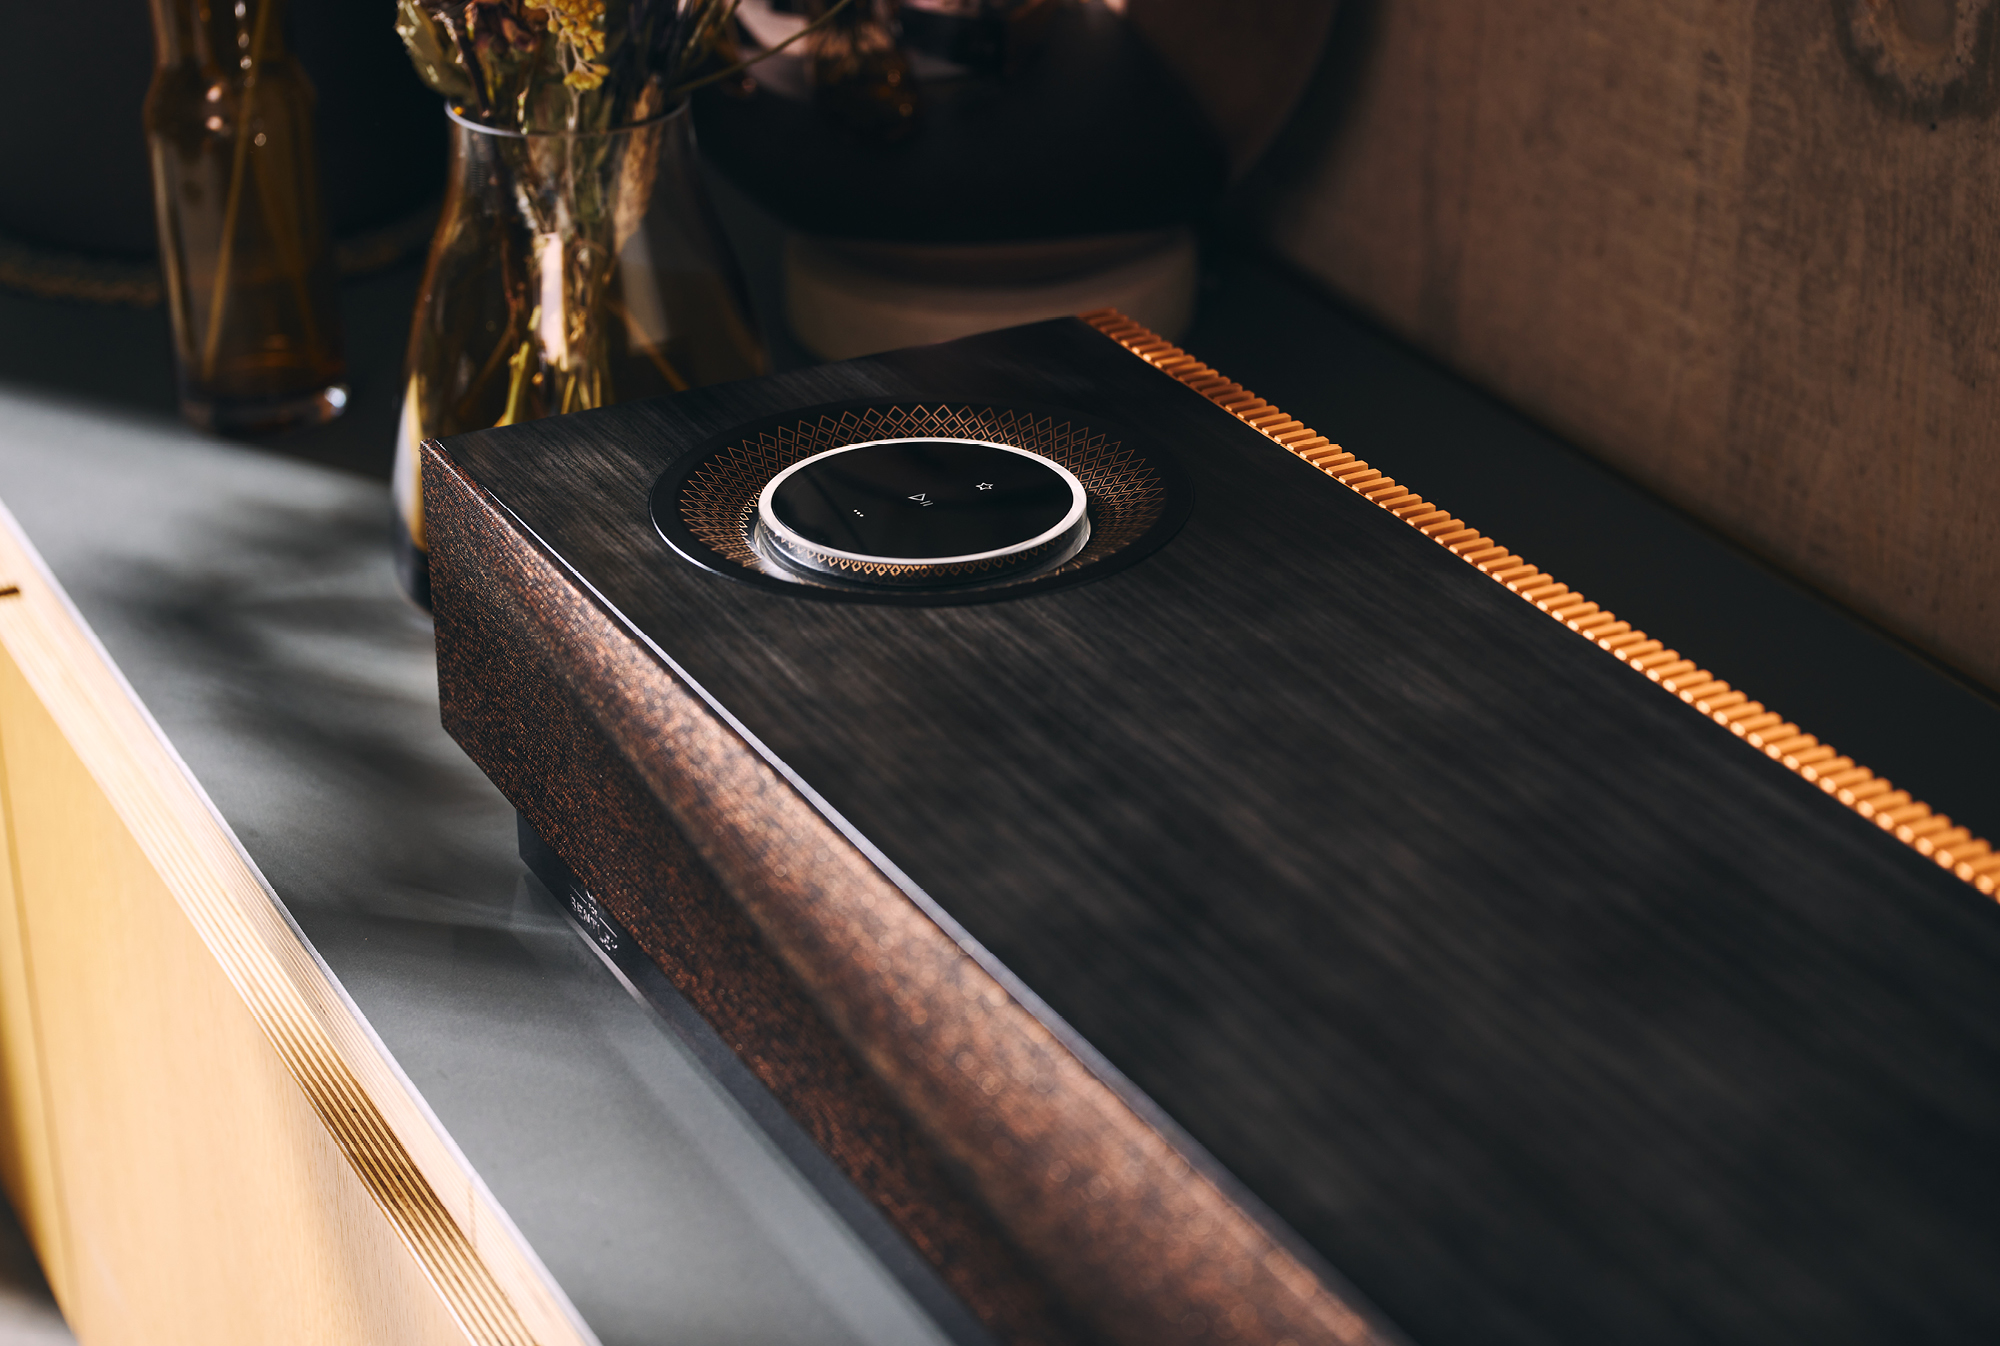 The Naim Mu-so for Bentley Special Edition speaker will be available from October for £1,799